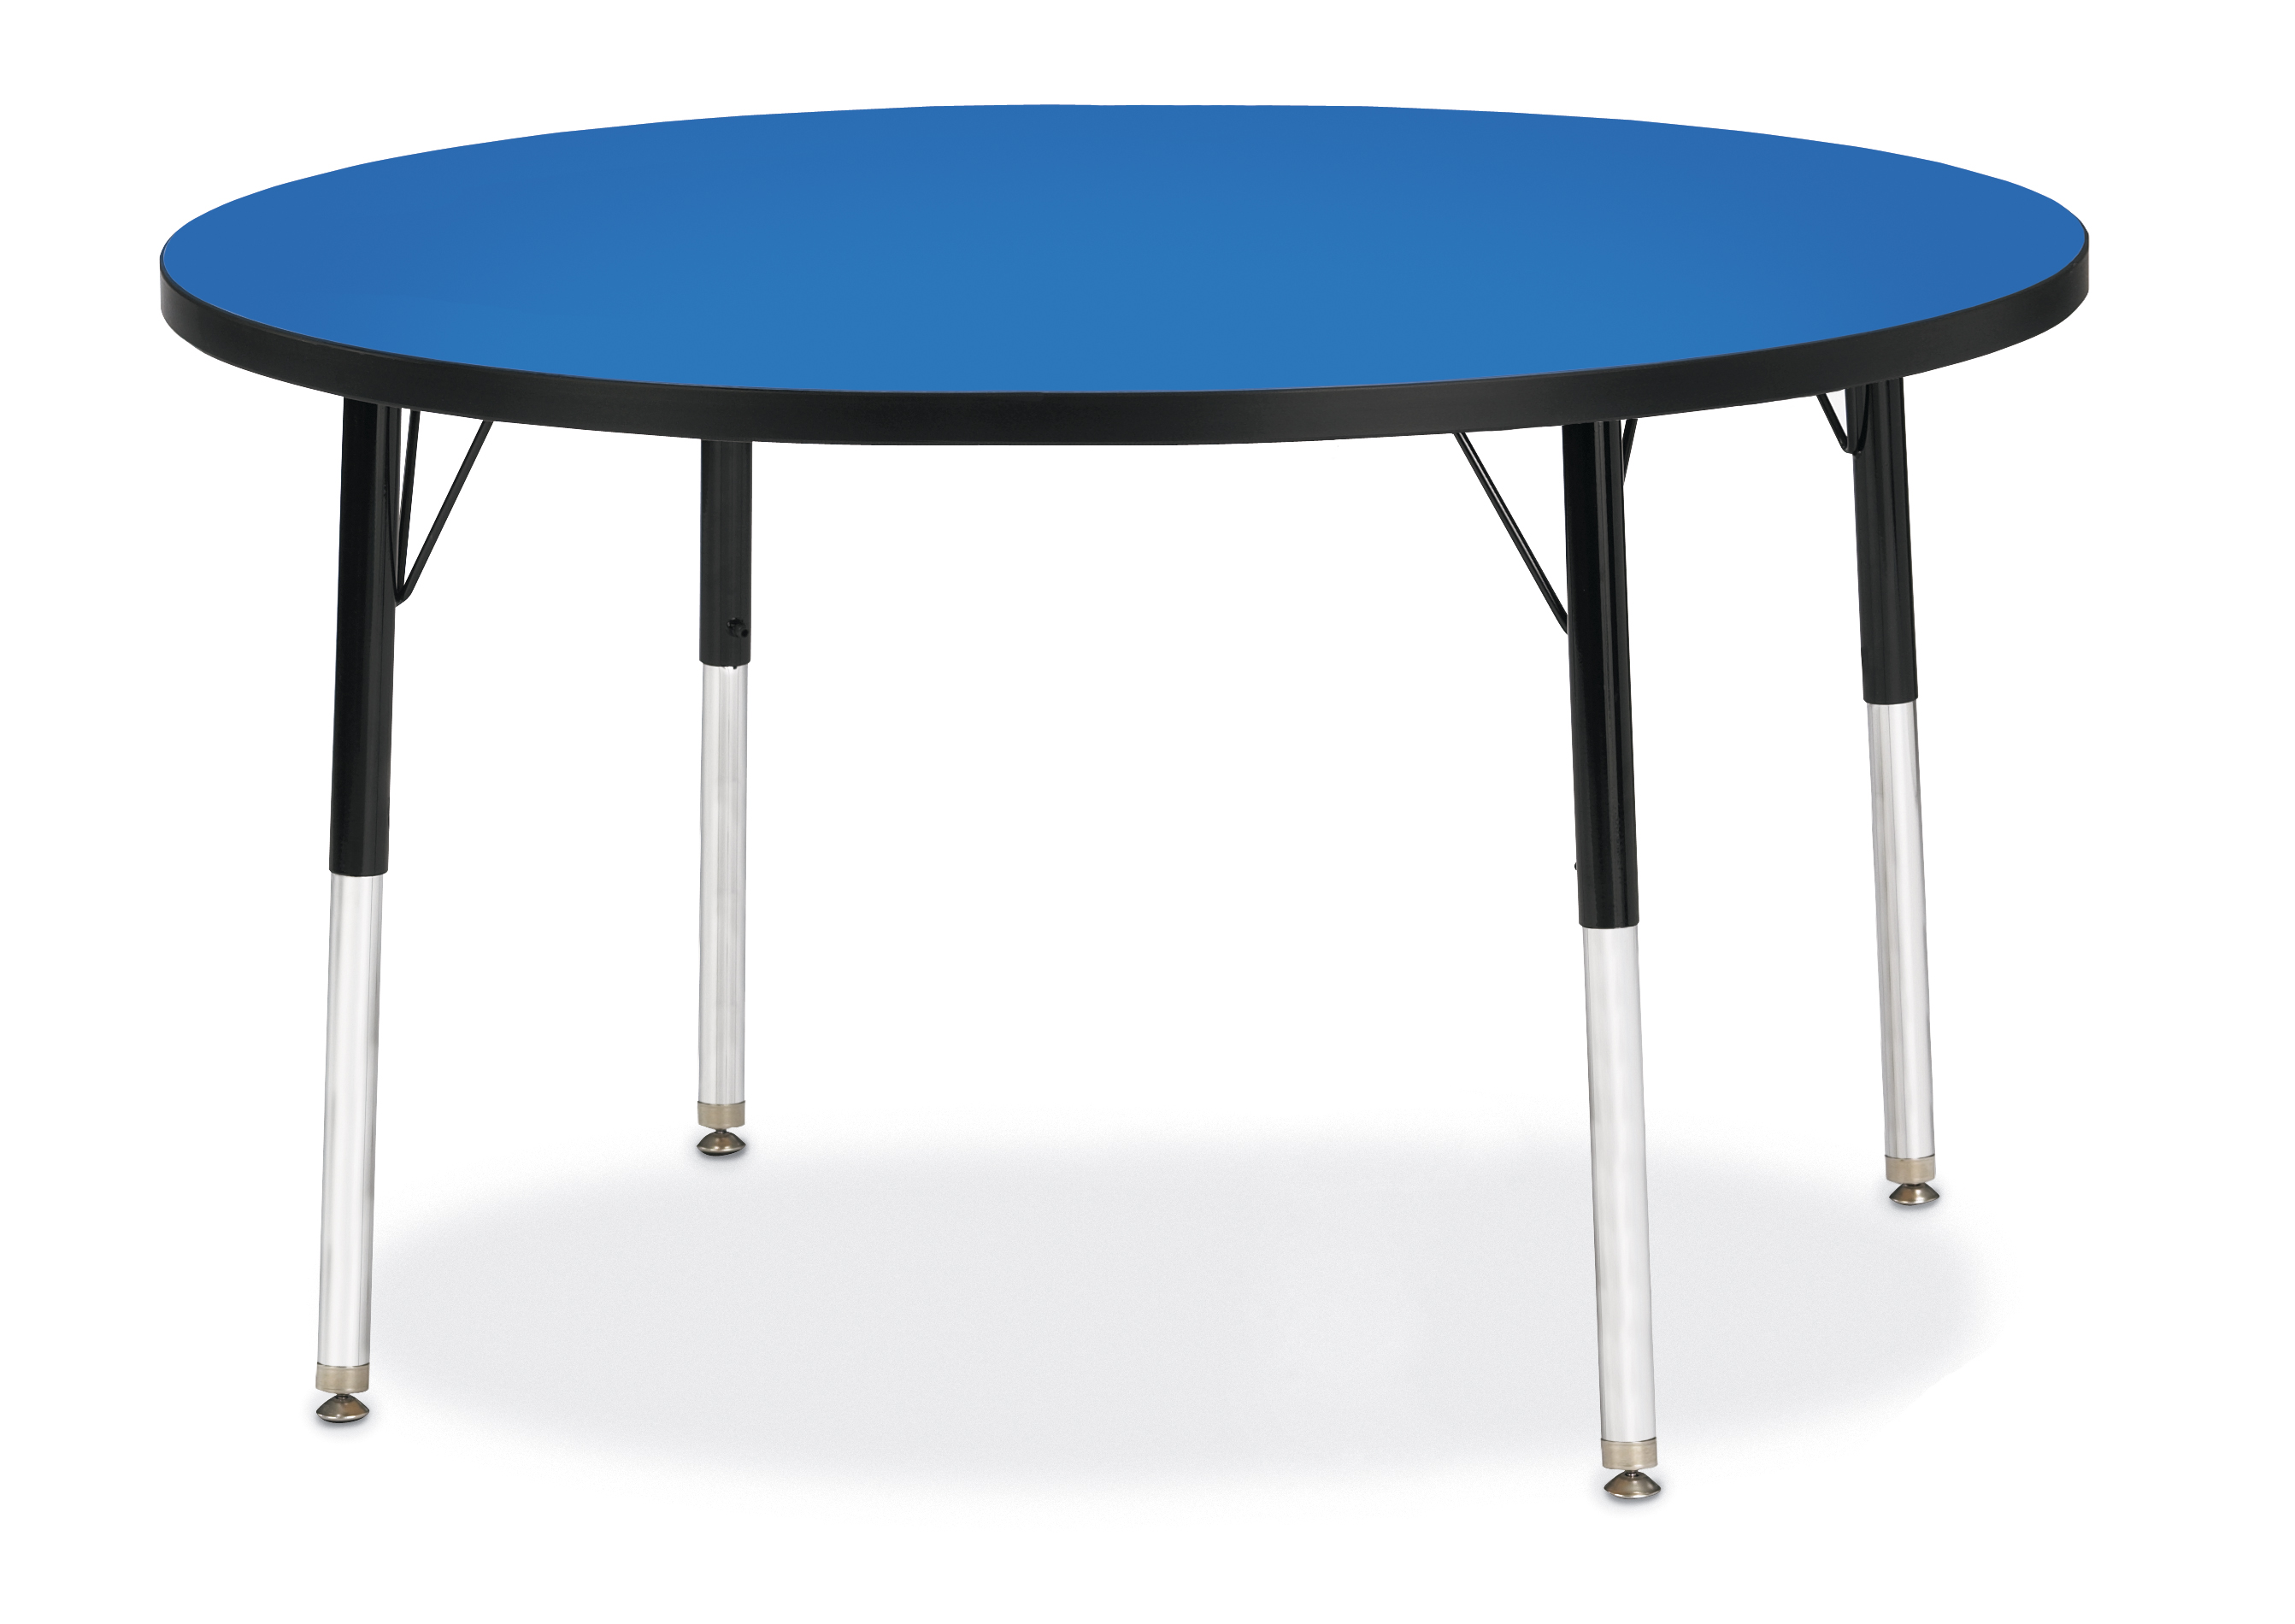 Berries round activity table 42 diameter mobile for Mobile furniture